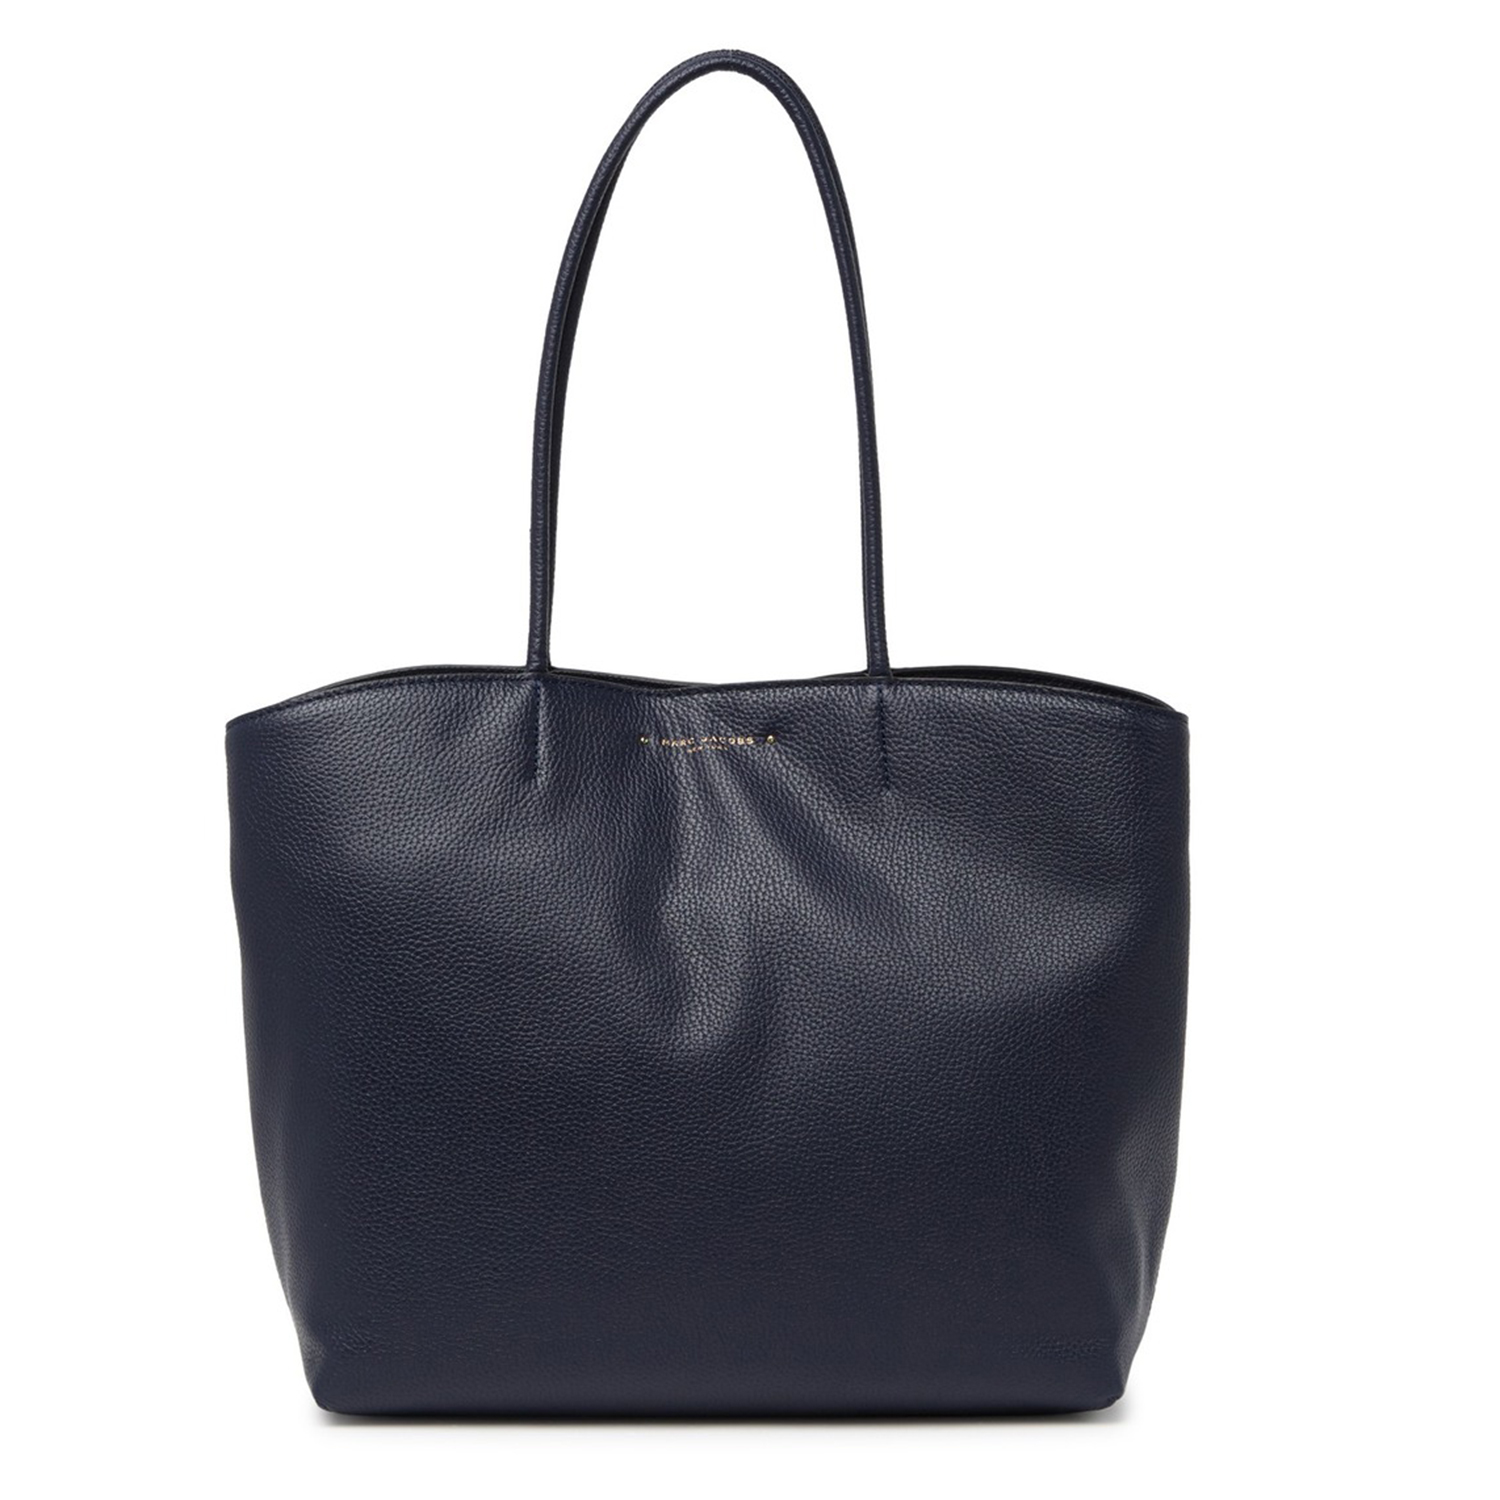 Marc Jacobs Supple Leather Tote Bag